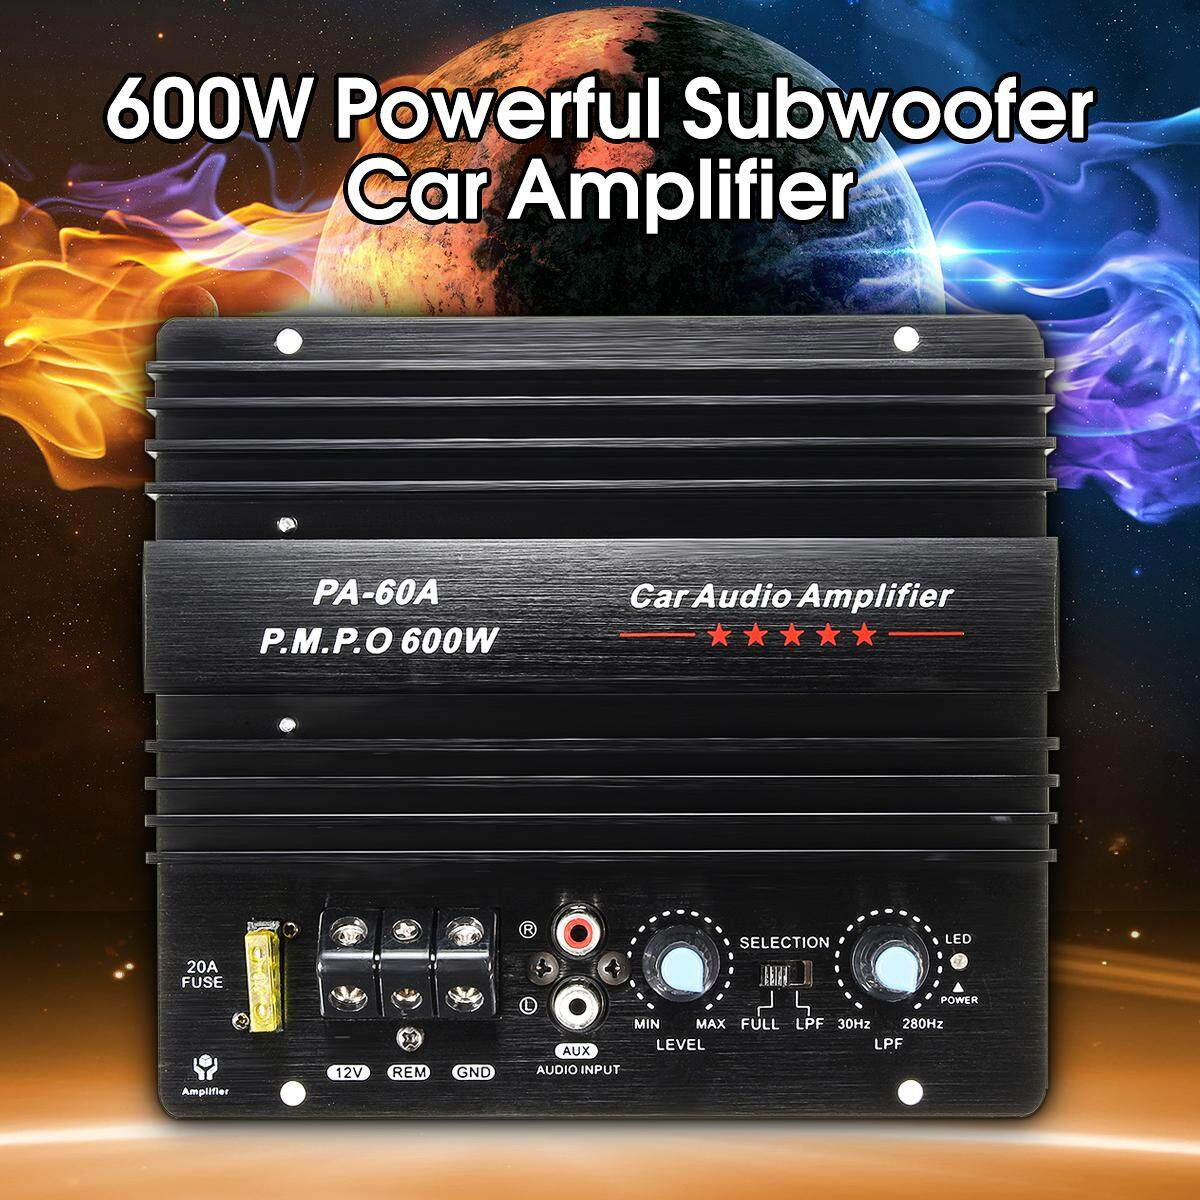 Small Motorcycle Fuse Box Car Amplifier For Sale Audio Online Brands Prices 600w High Power Momo Board Home Subwoofer Super Bass Amp 12v